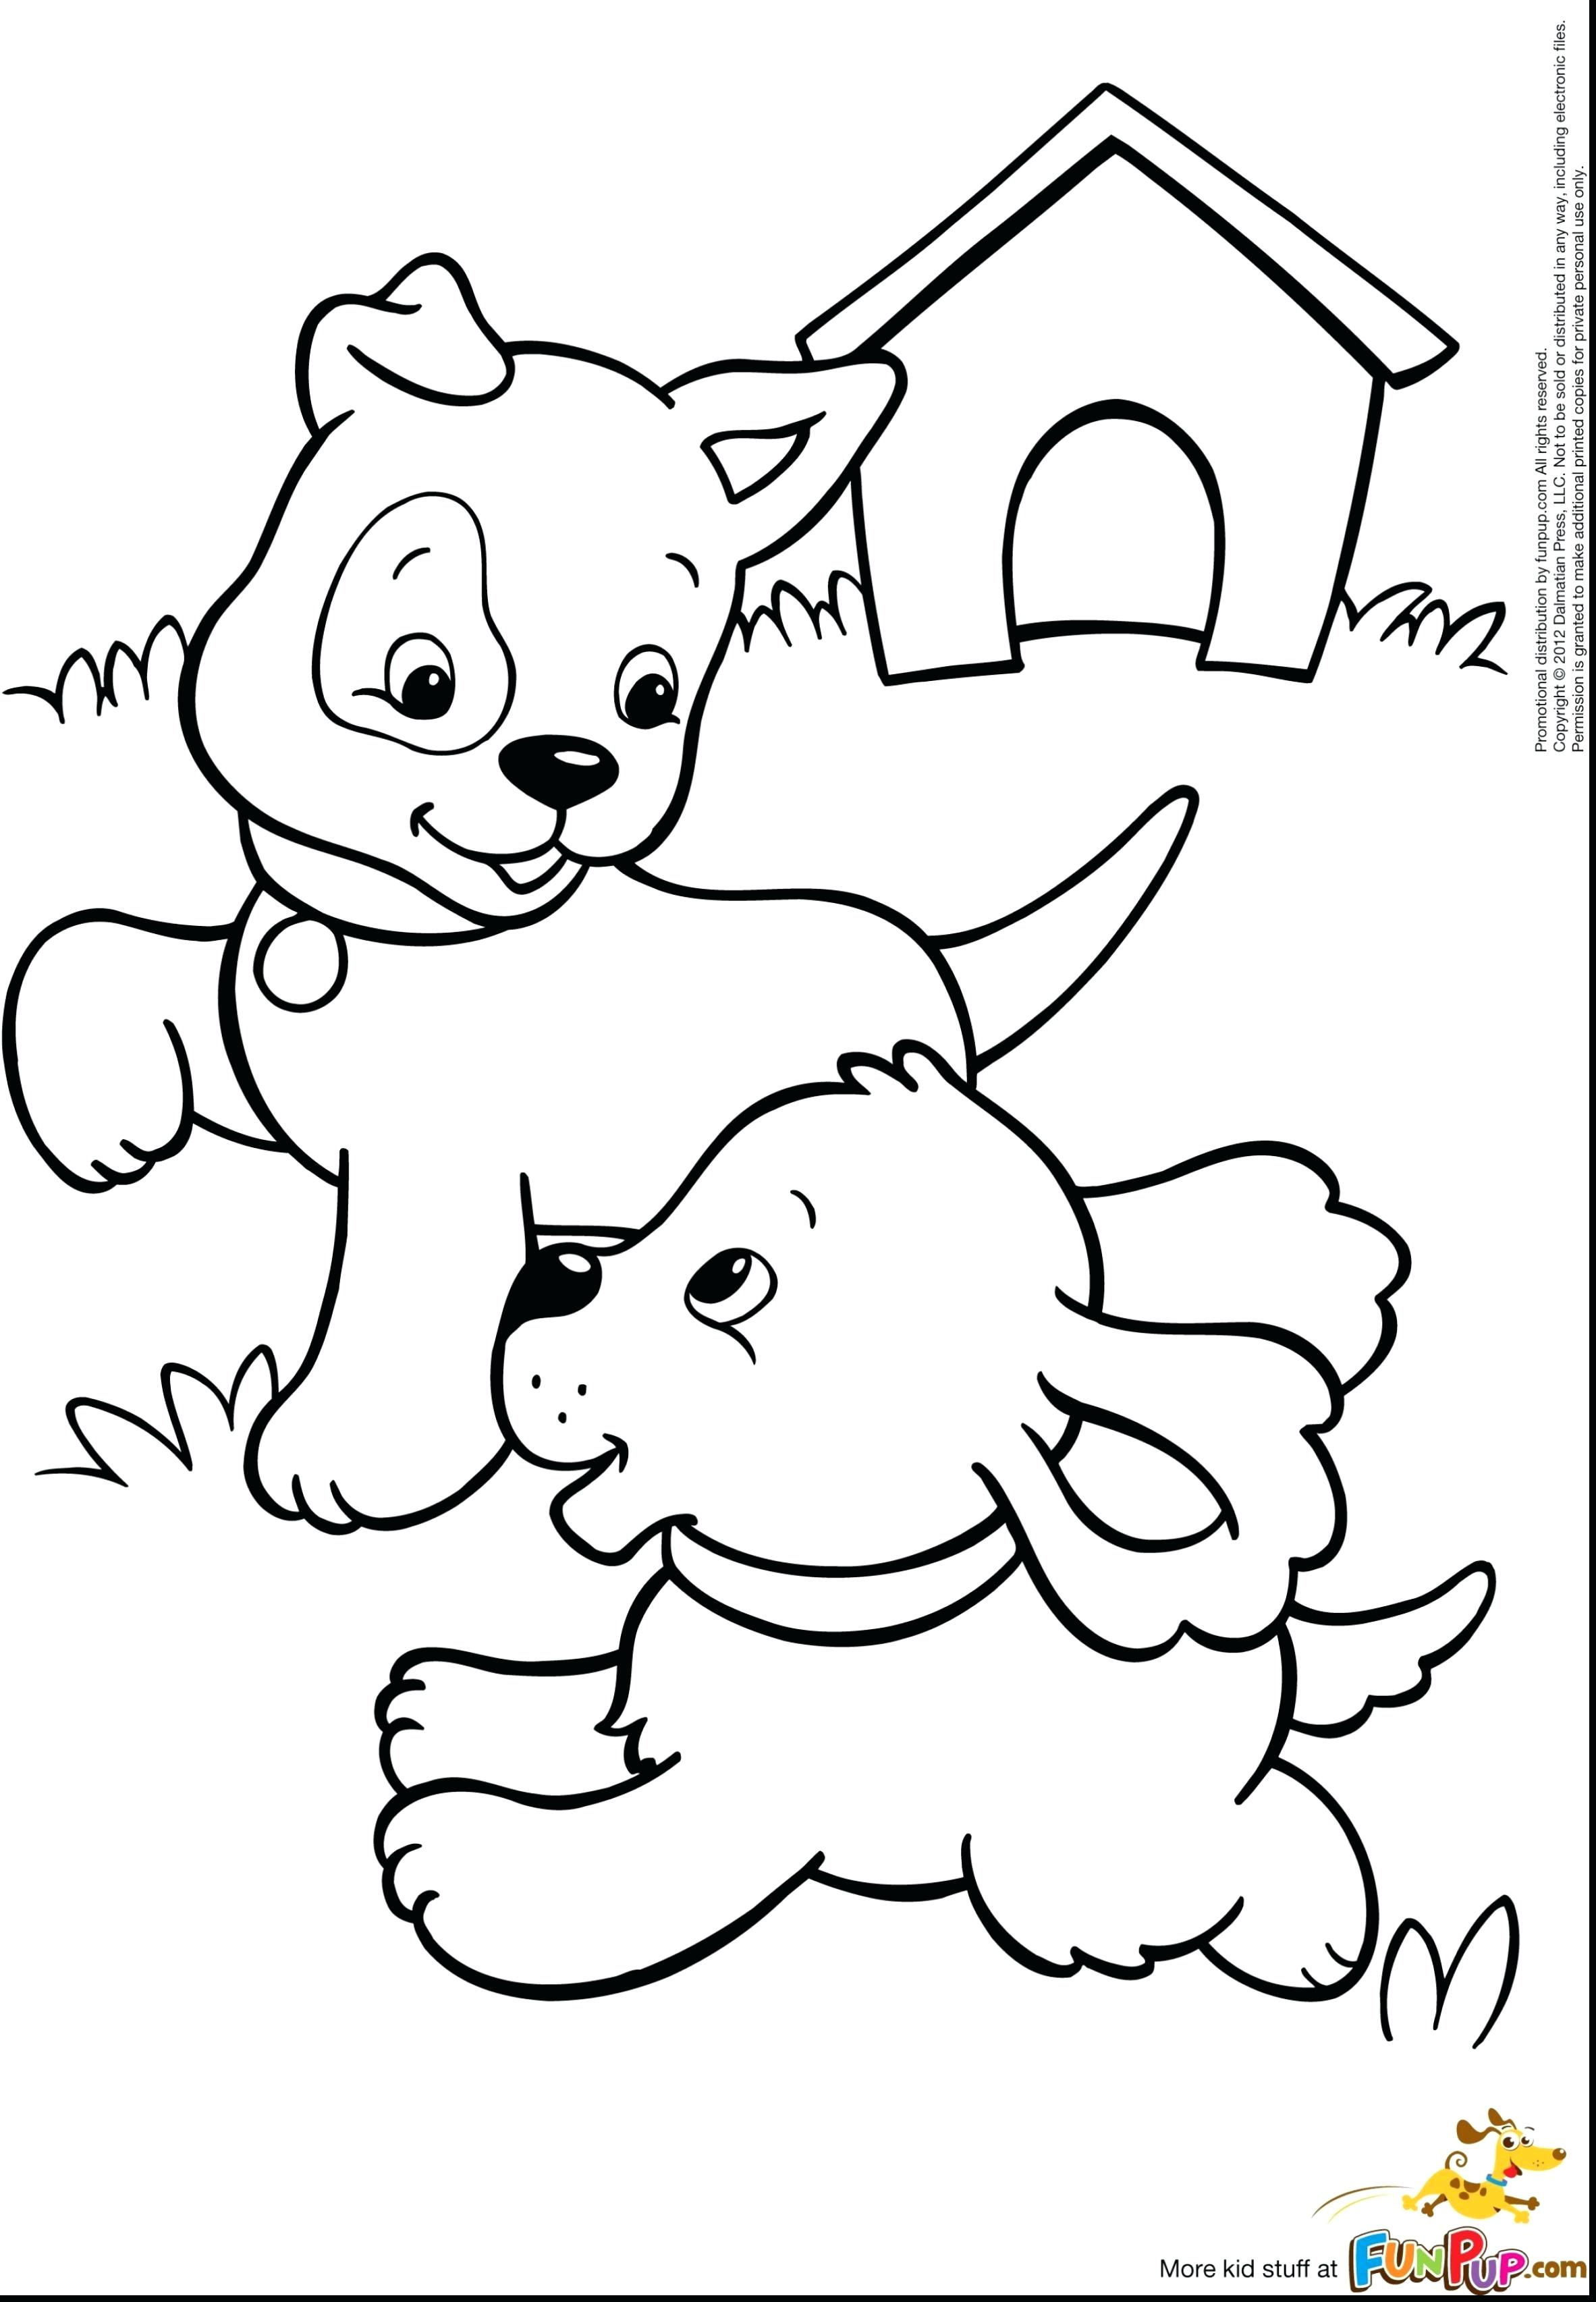 Johnny Test Coloring Pages At Getcolorings